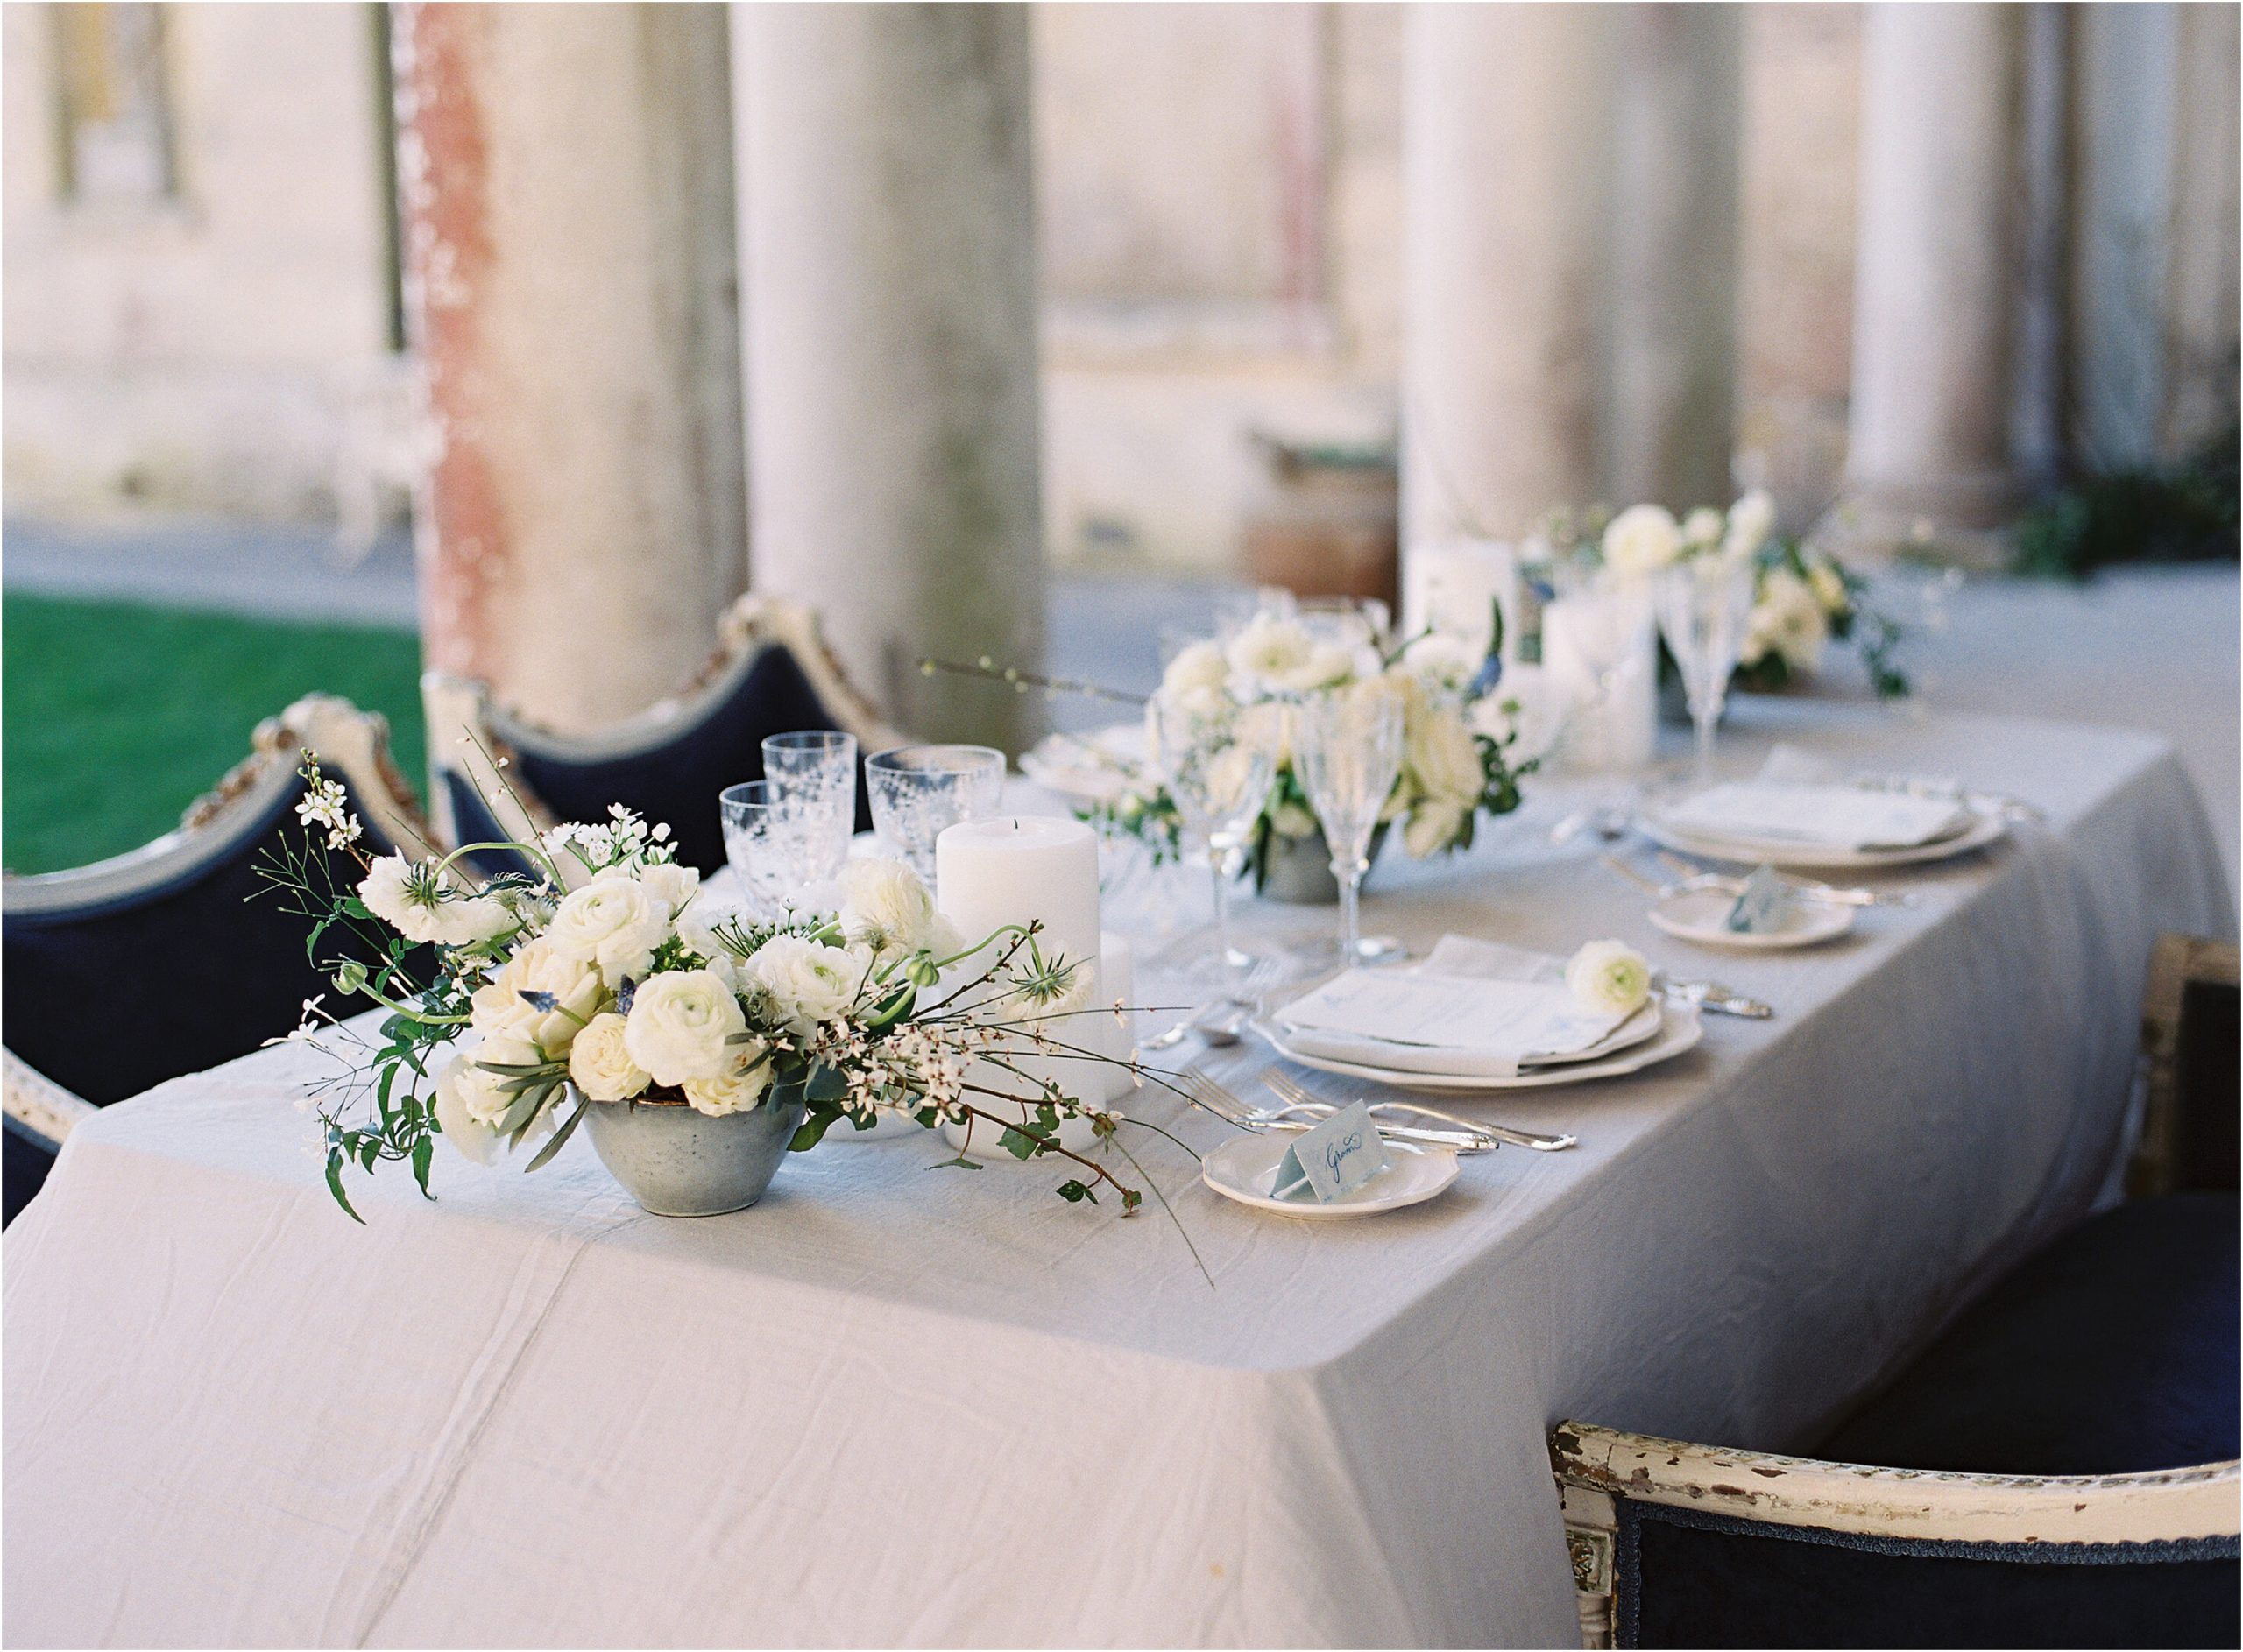 Wedding table set up for intimate wedding